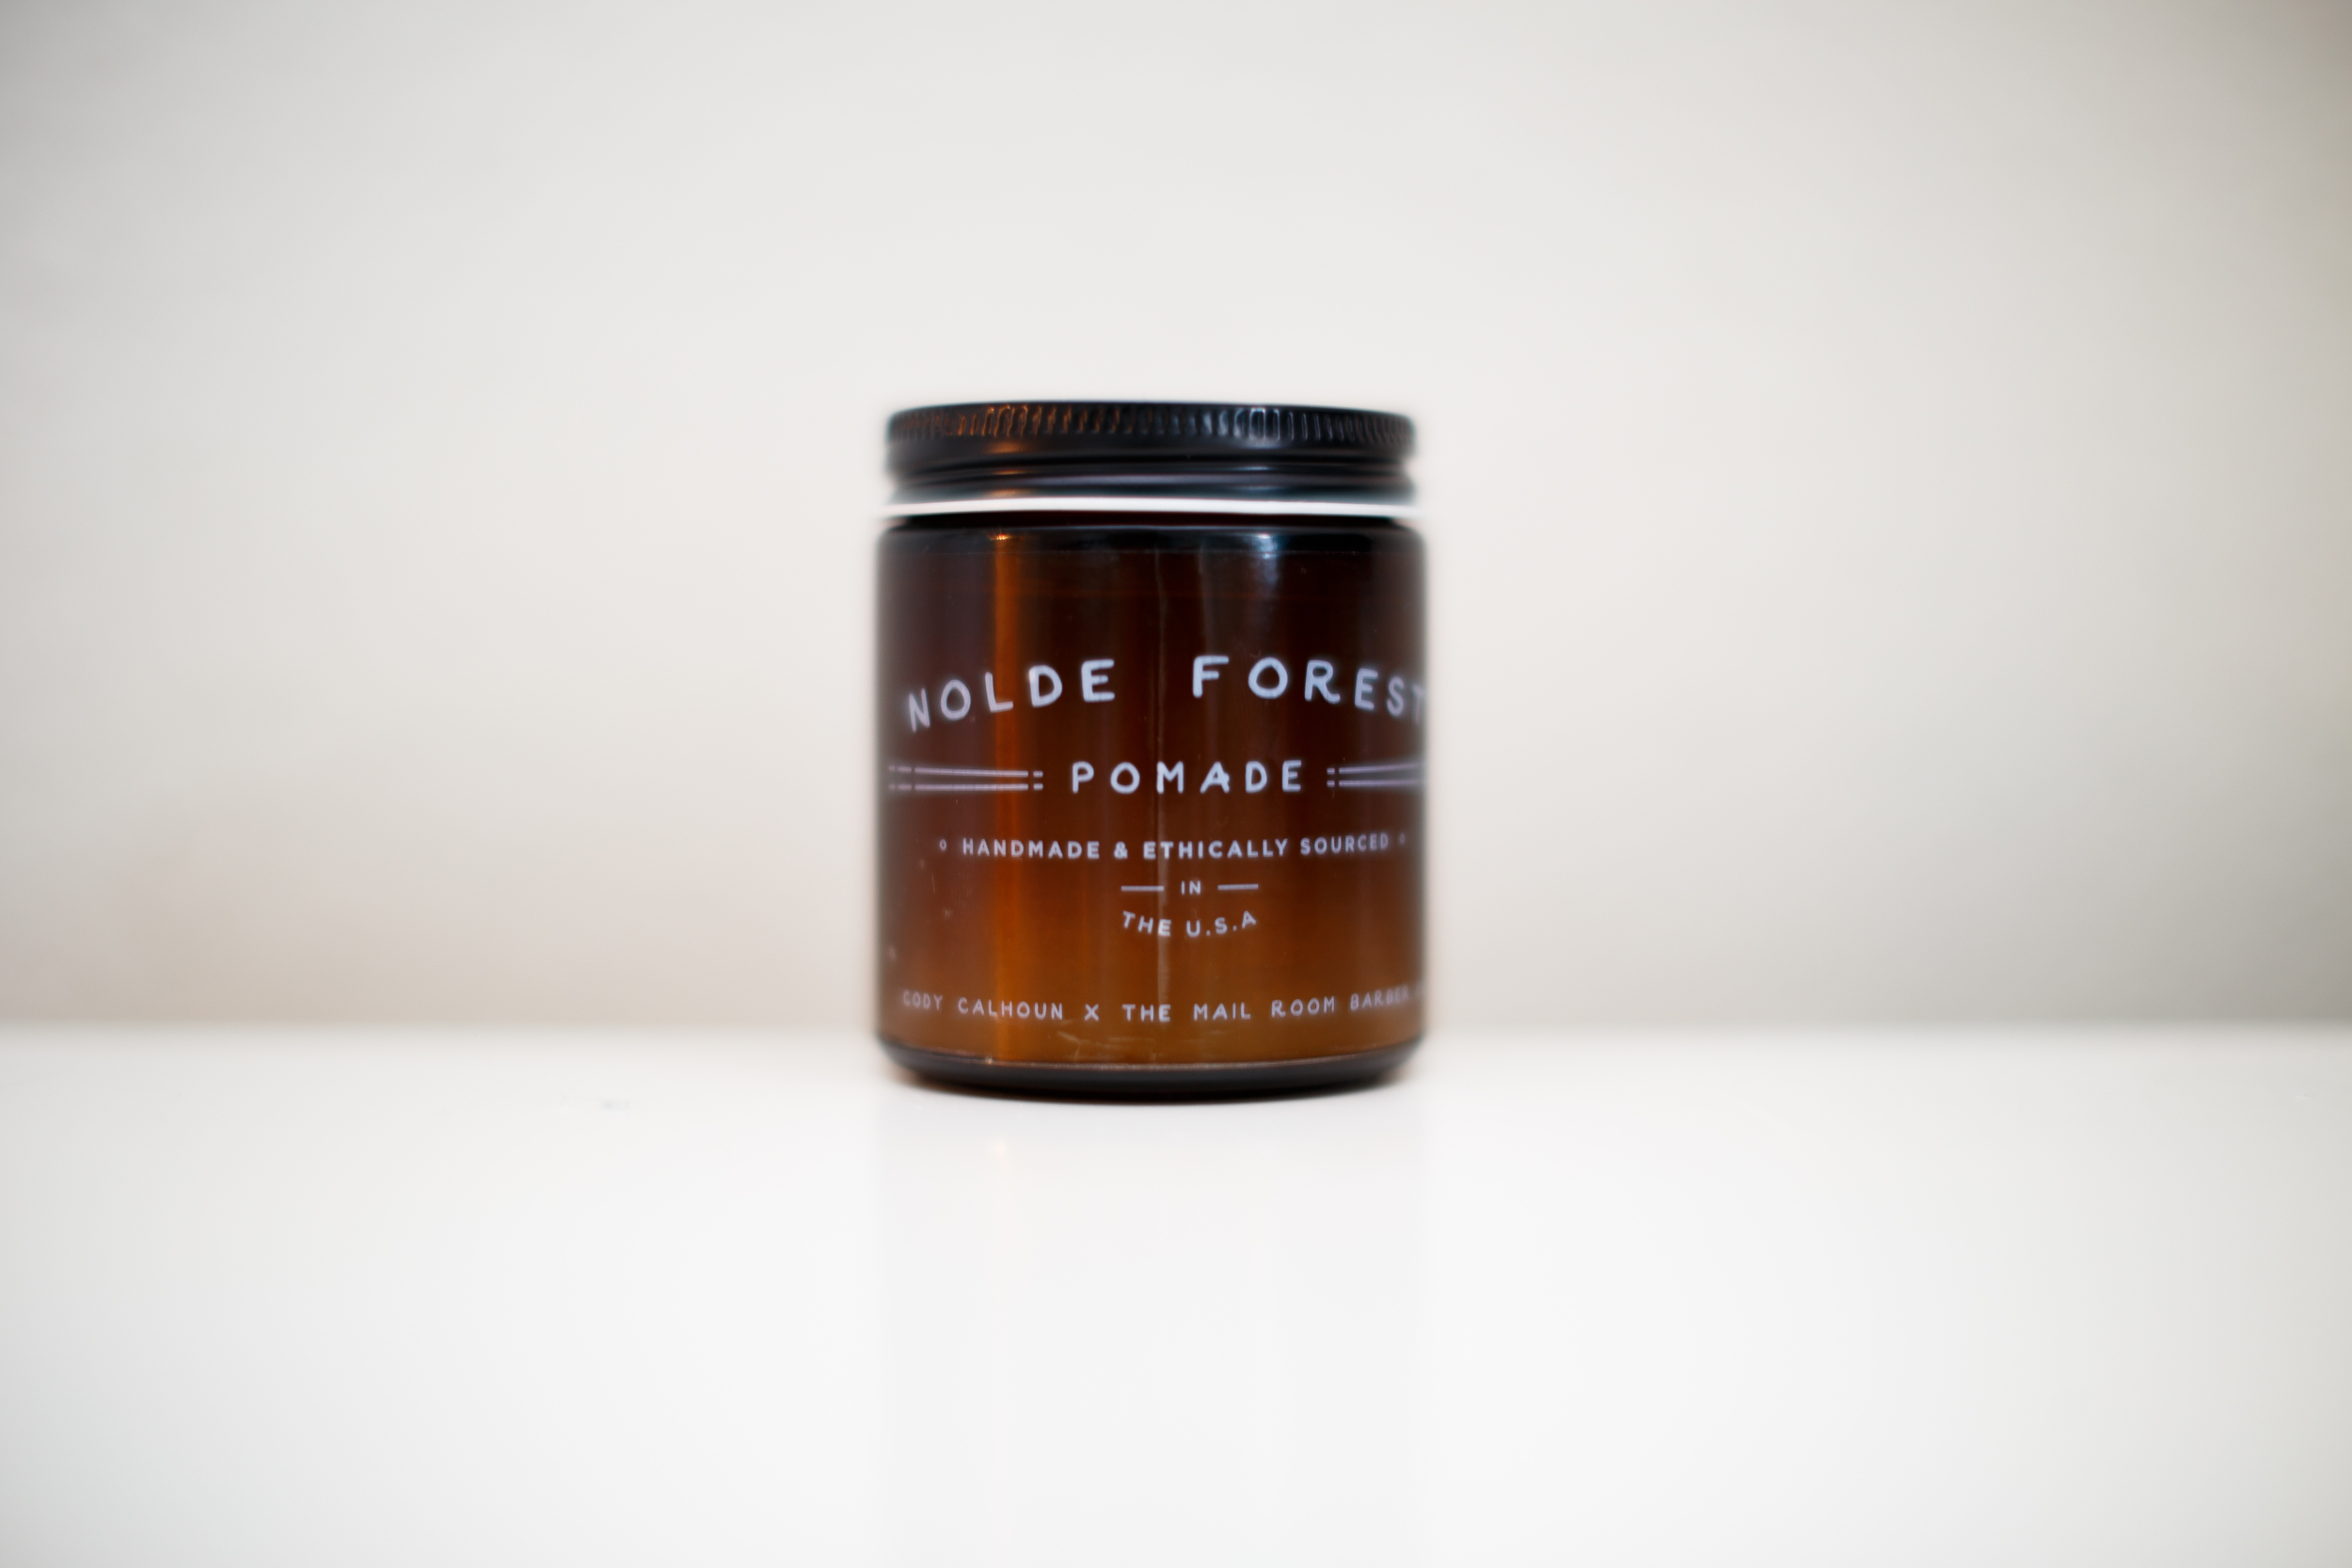 Best Smelling Pomade of 2015 -- The Mail Room Barber X Cody Calhoune Nolde Forest Pomade